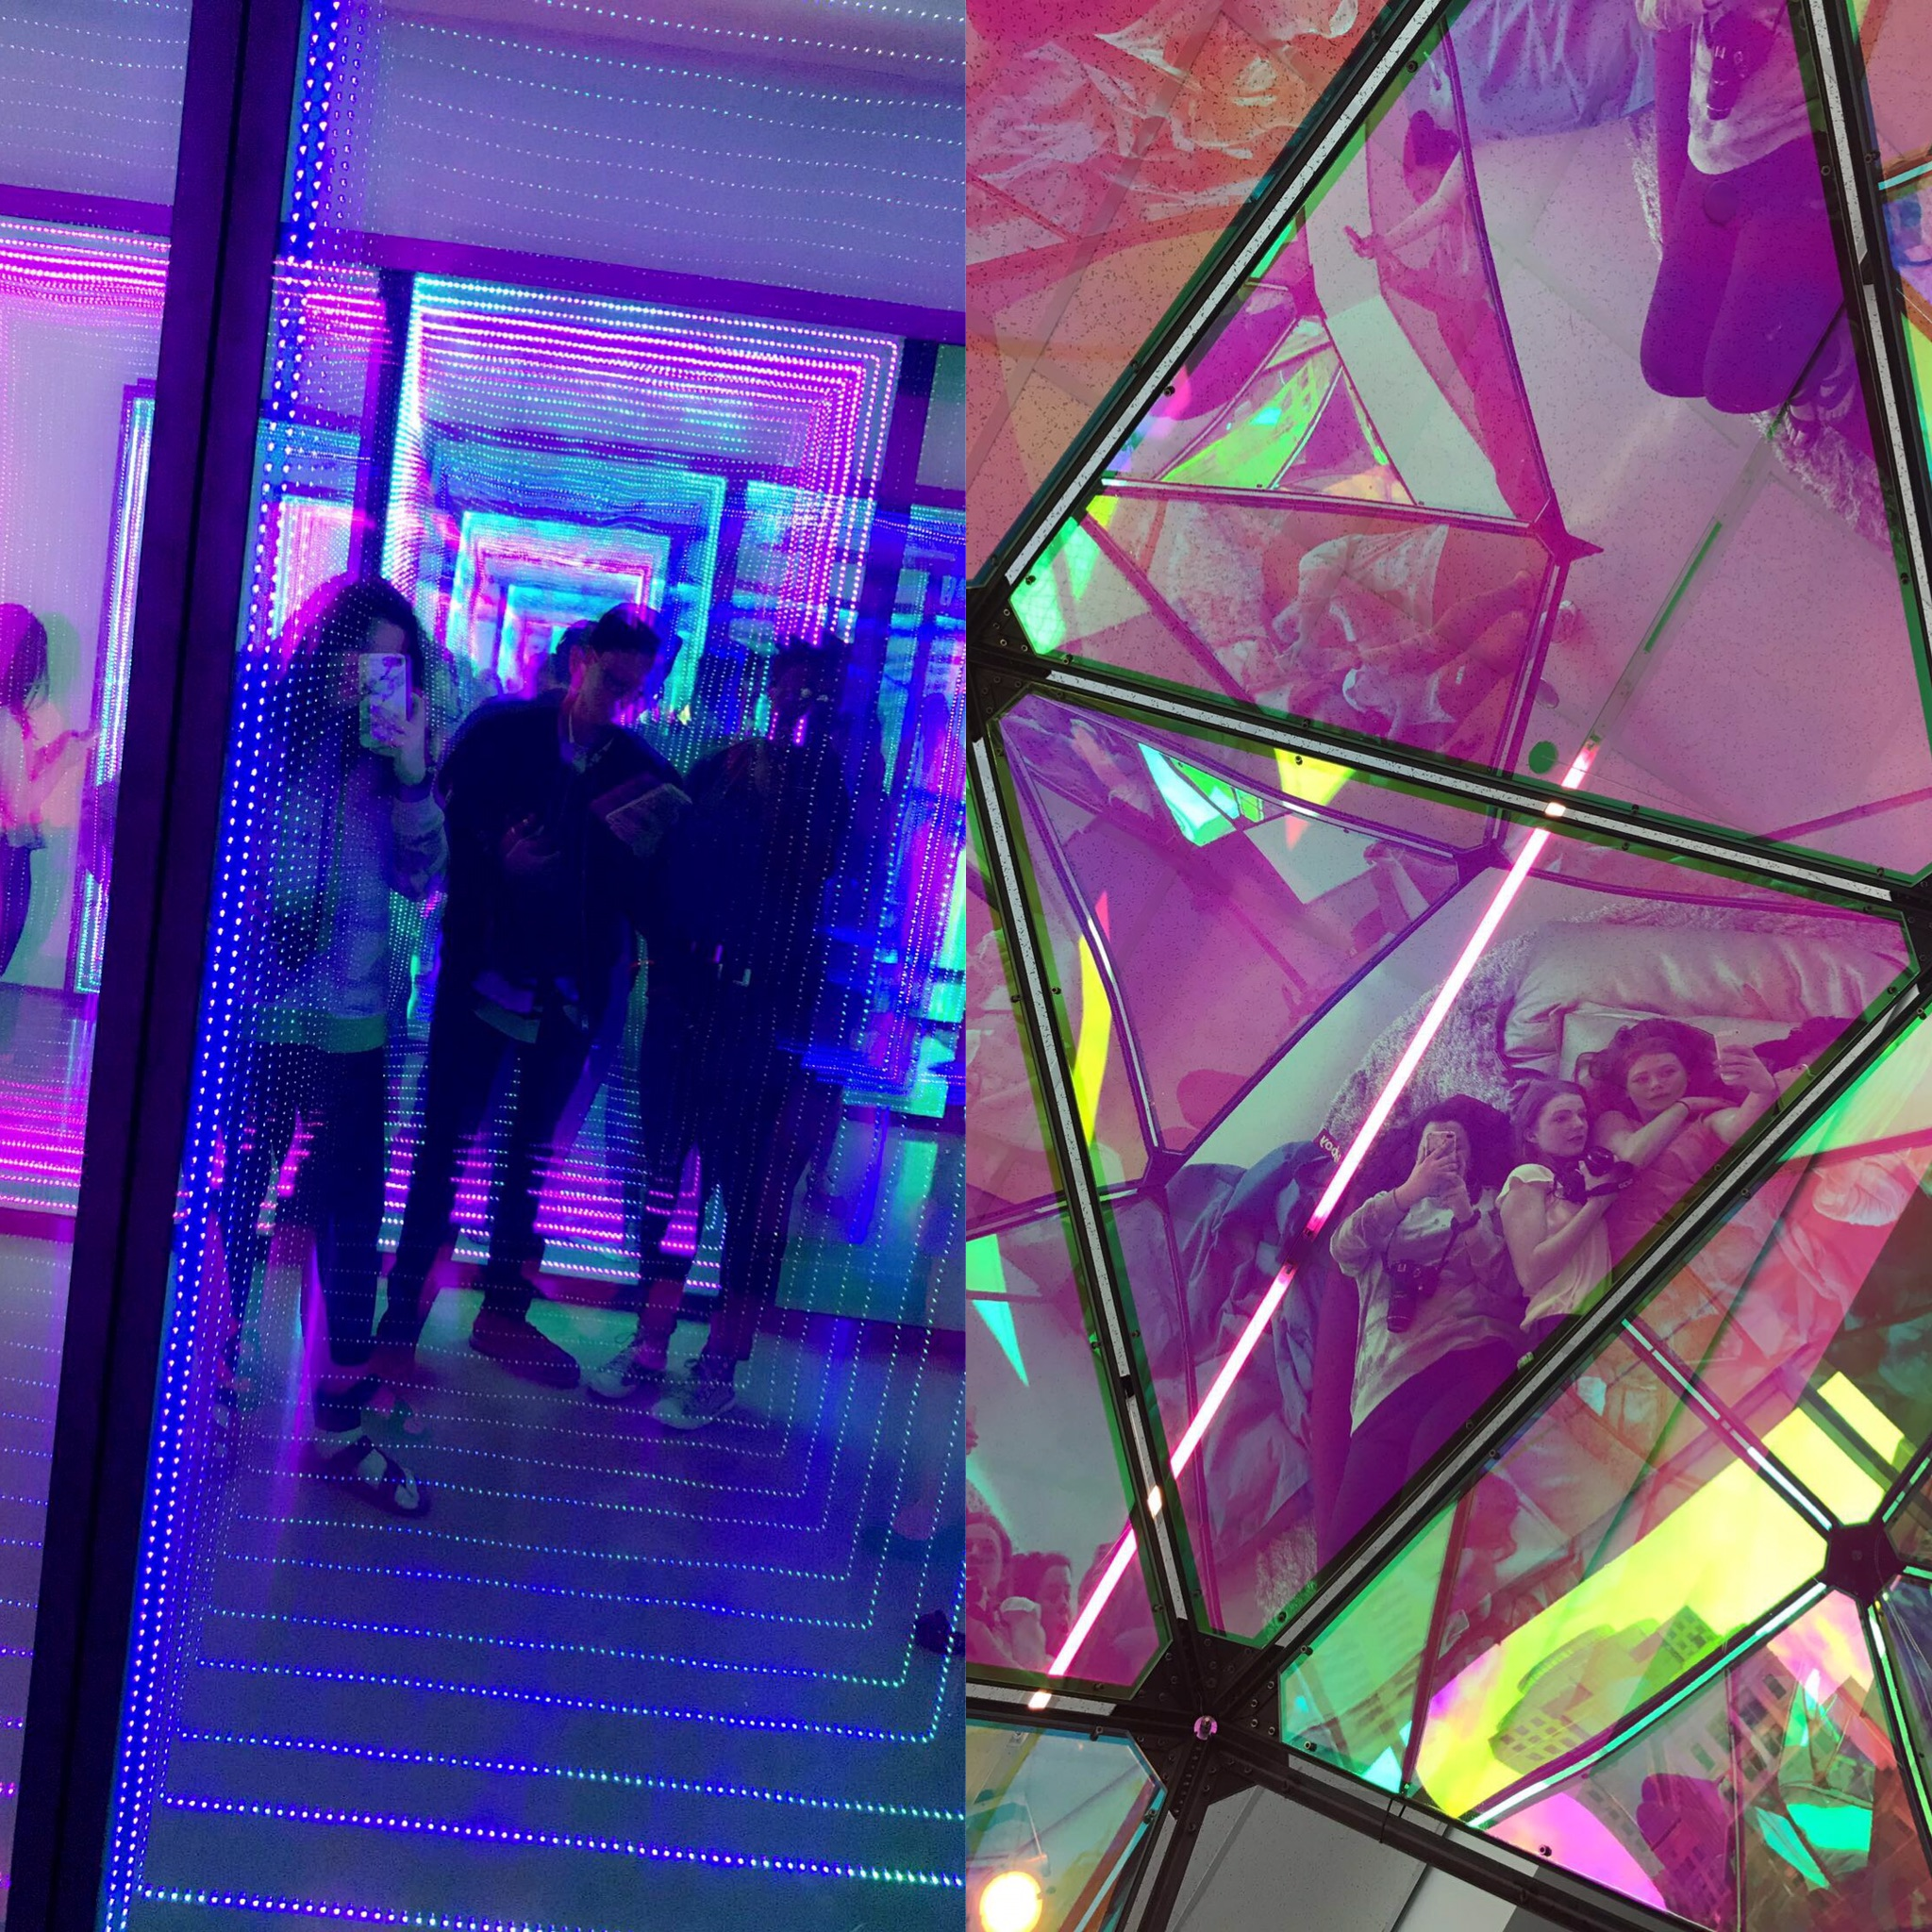 Photos by: Kaity Travis, '18 at the Contemporary Arts Center